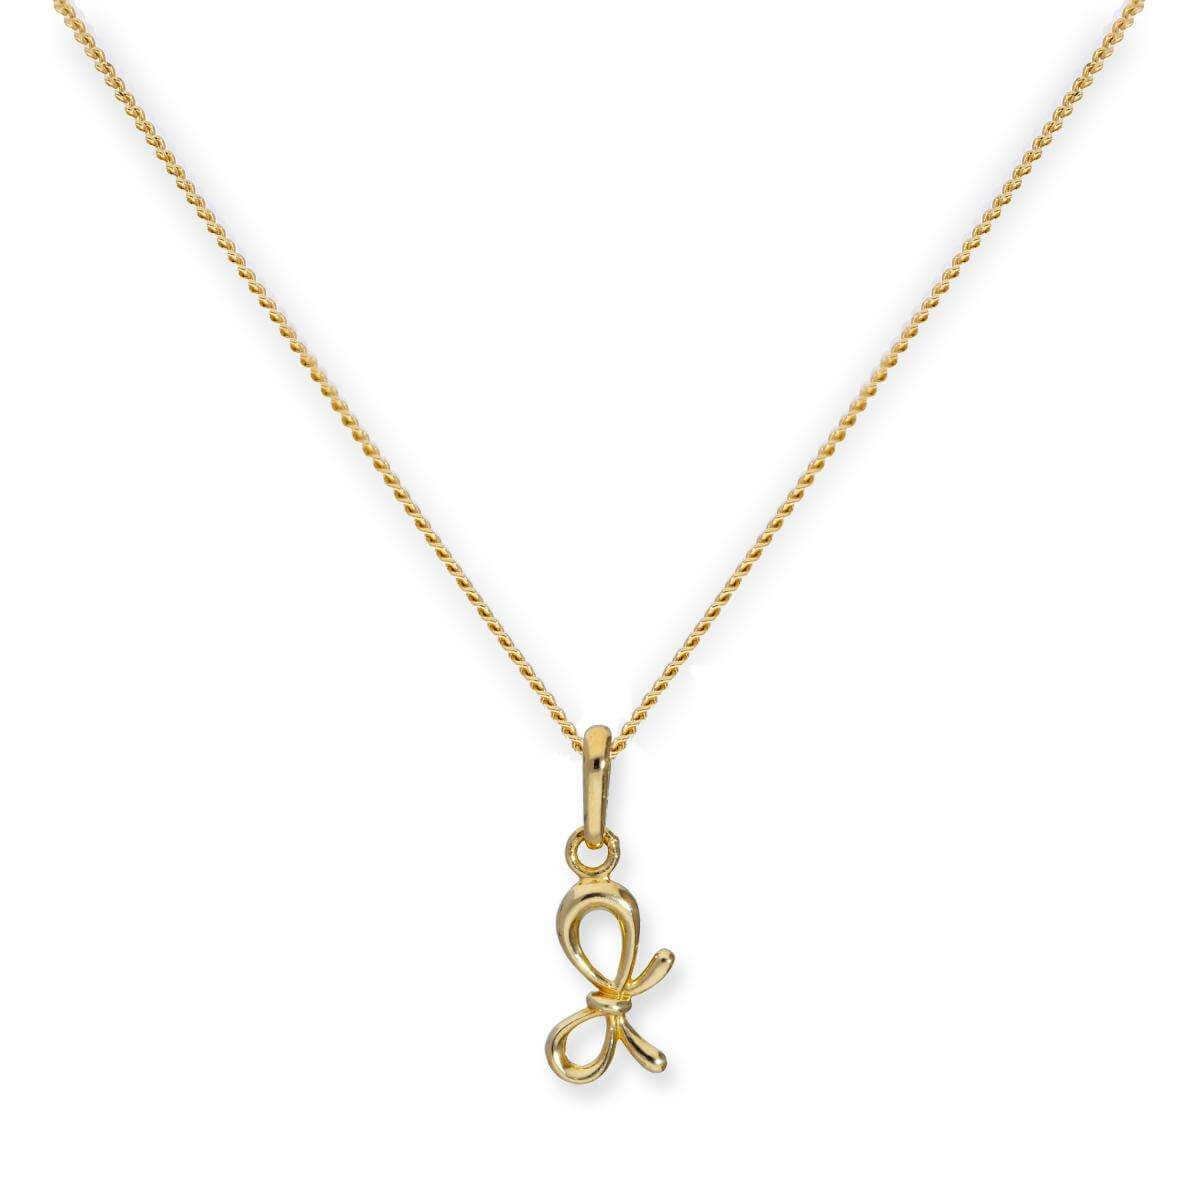 9ct Gold Ribbon Bow Pendant on Chain 16 - 20 Inches